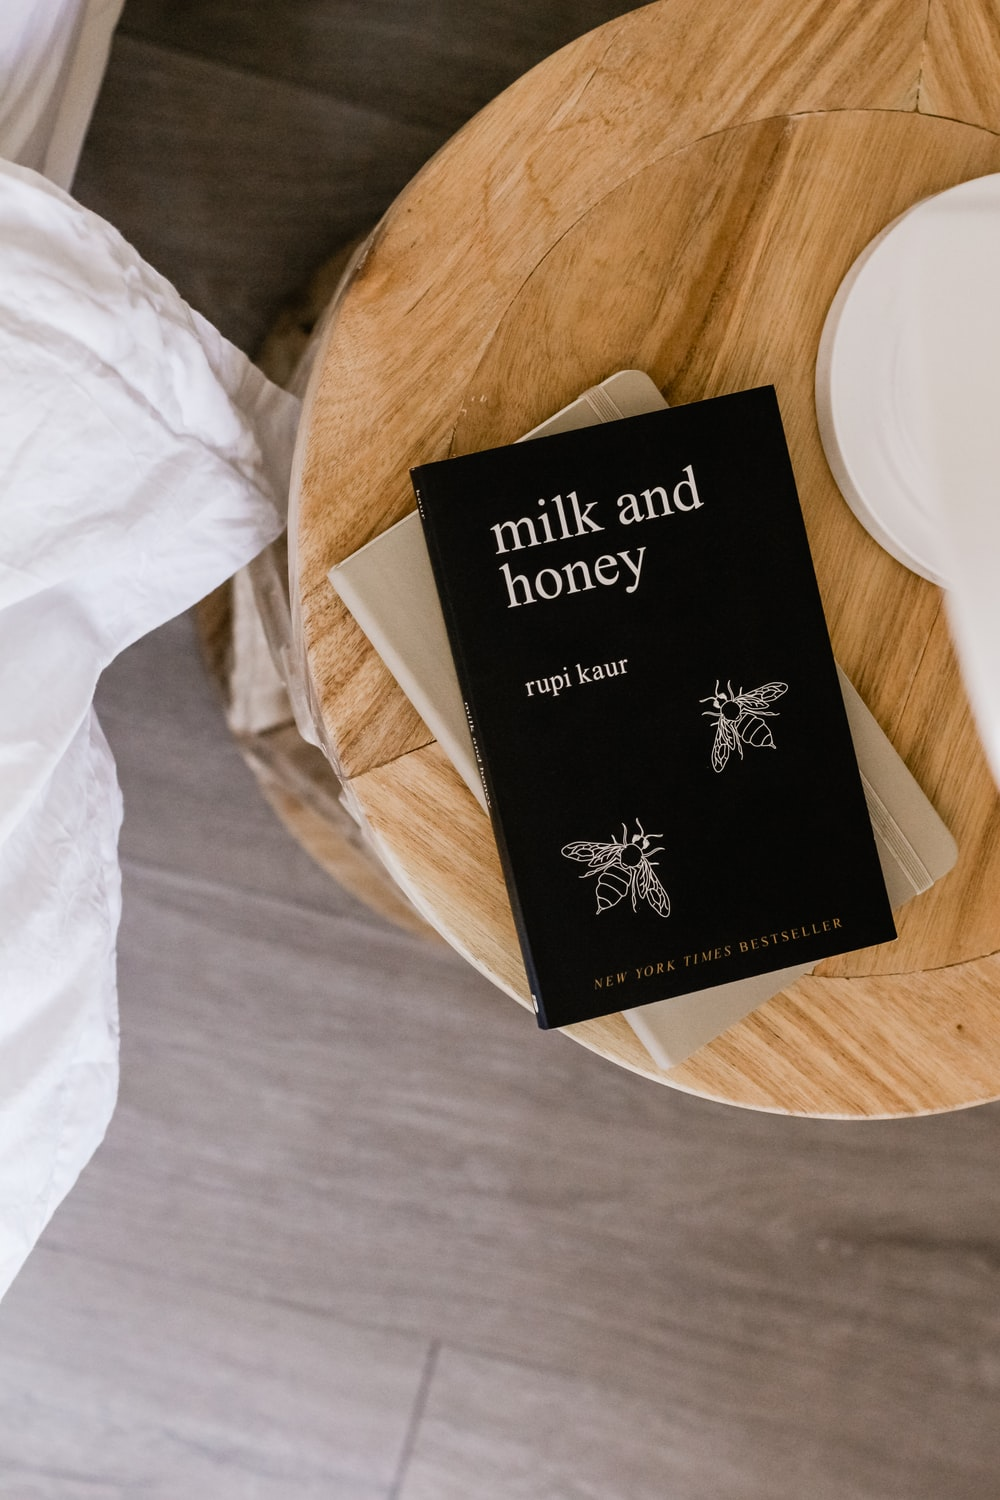 Milk and Honey by Rupi Kaur book on table